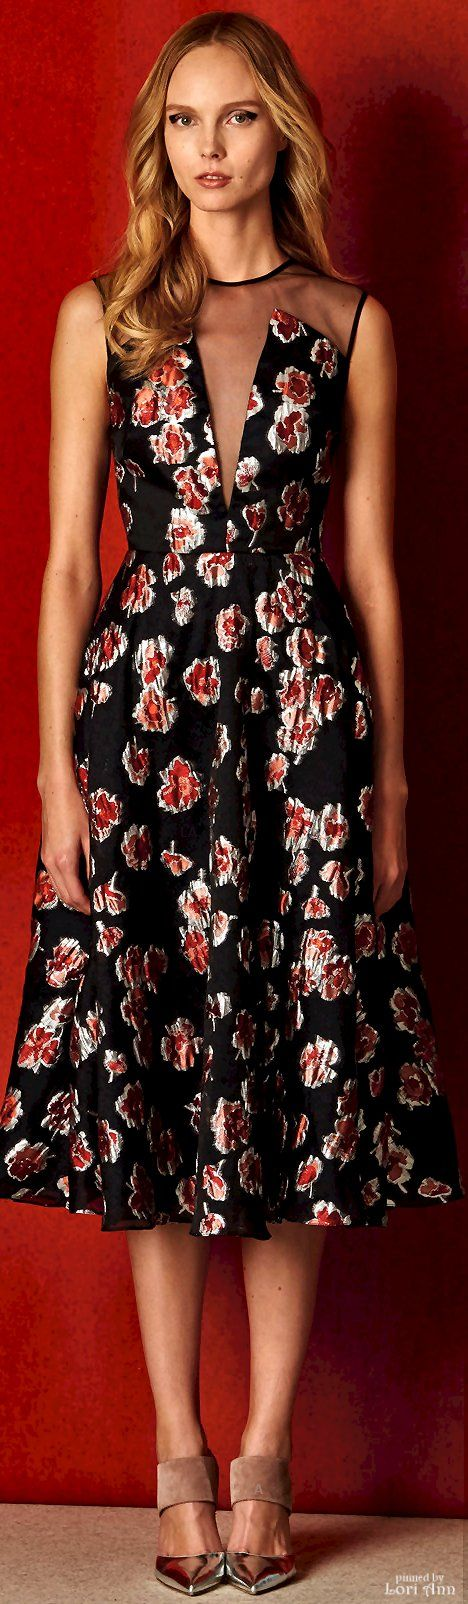 Lela Rose Pre-Fall 2016 women fashion outfit clothing style apparel @roressclothes closet ideas